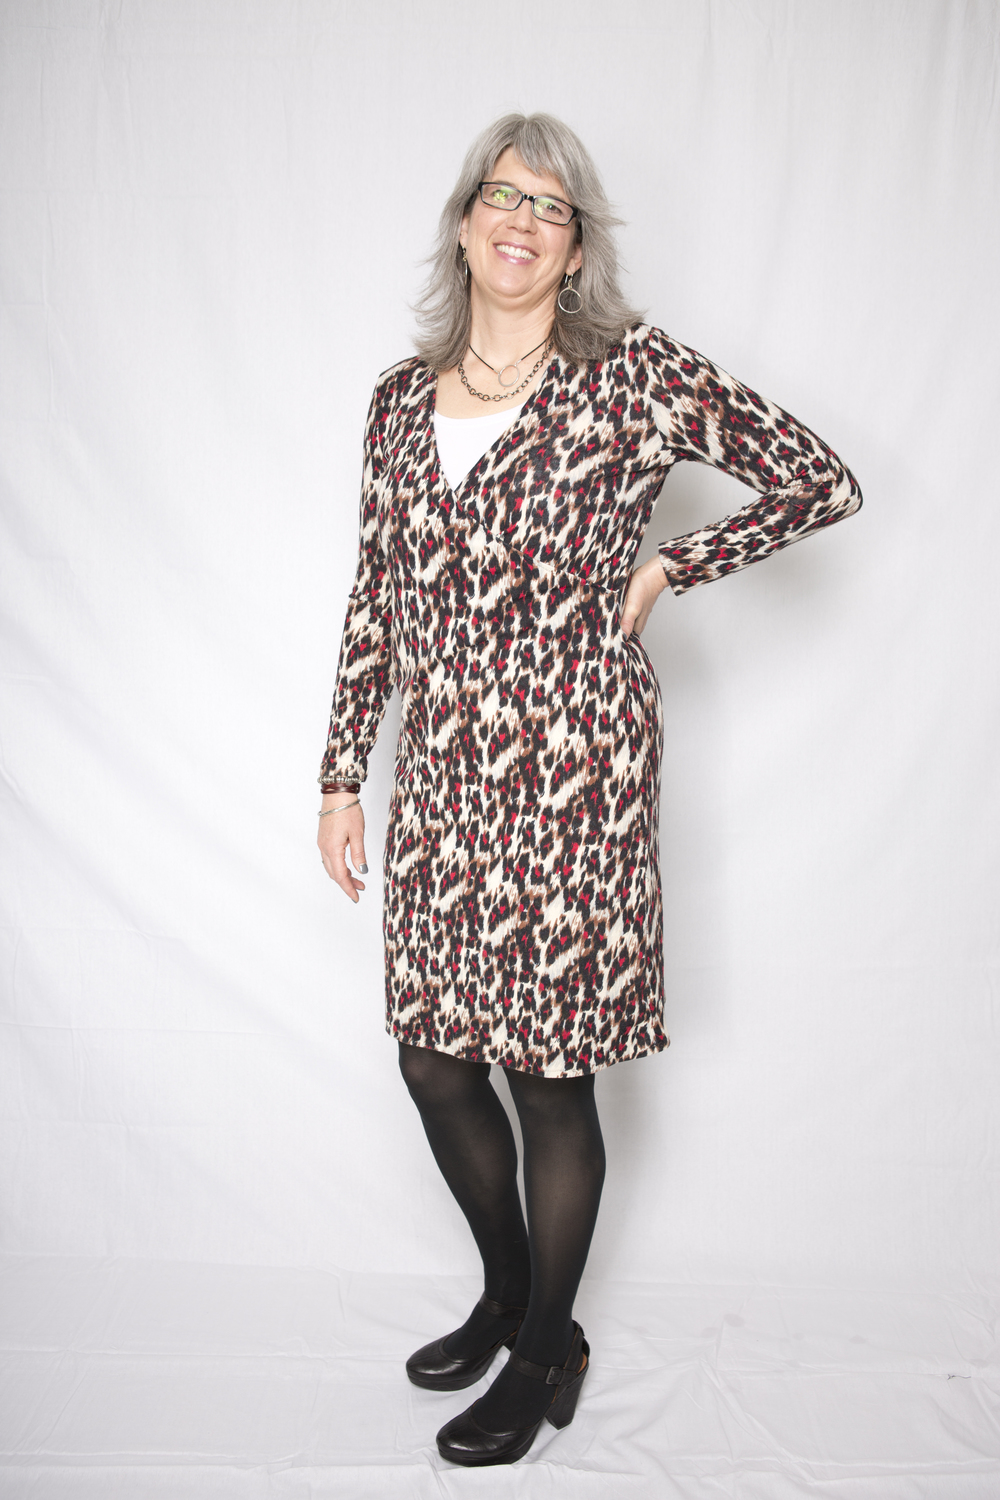 Version 1 of Slip on Suzie in a leopard print. Treehouse Photography Photo.